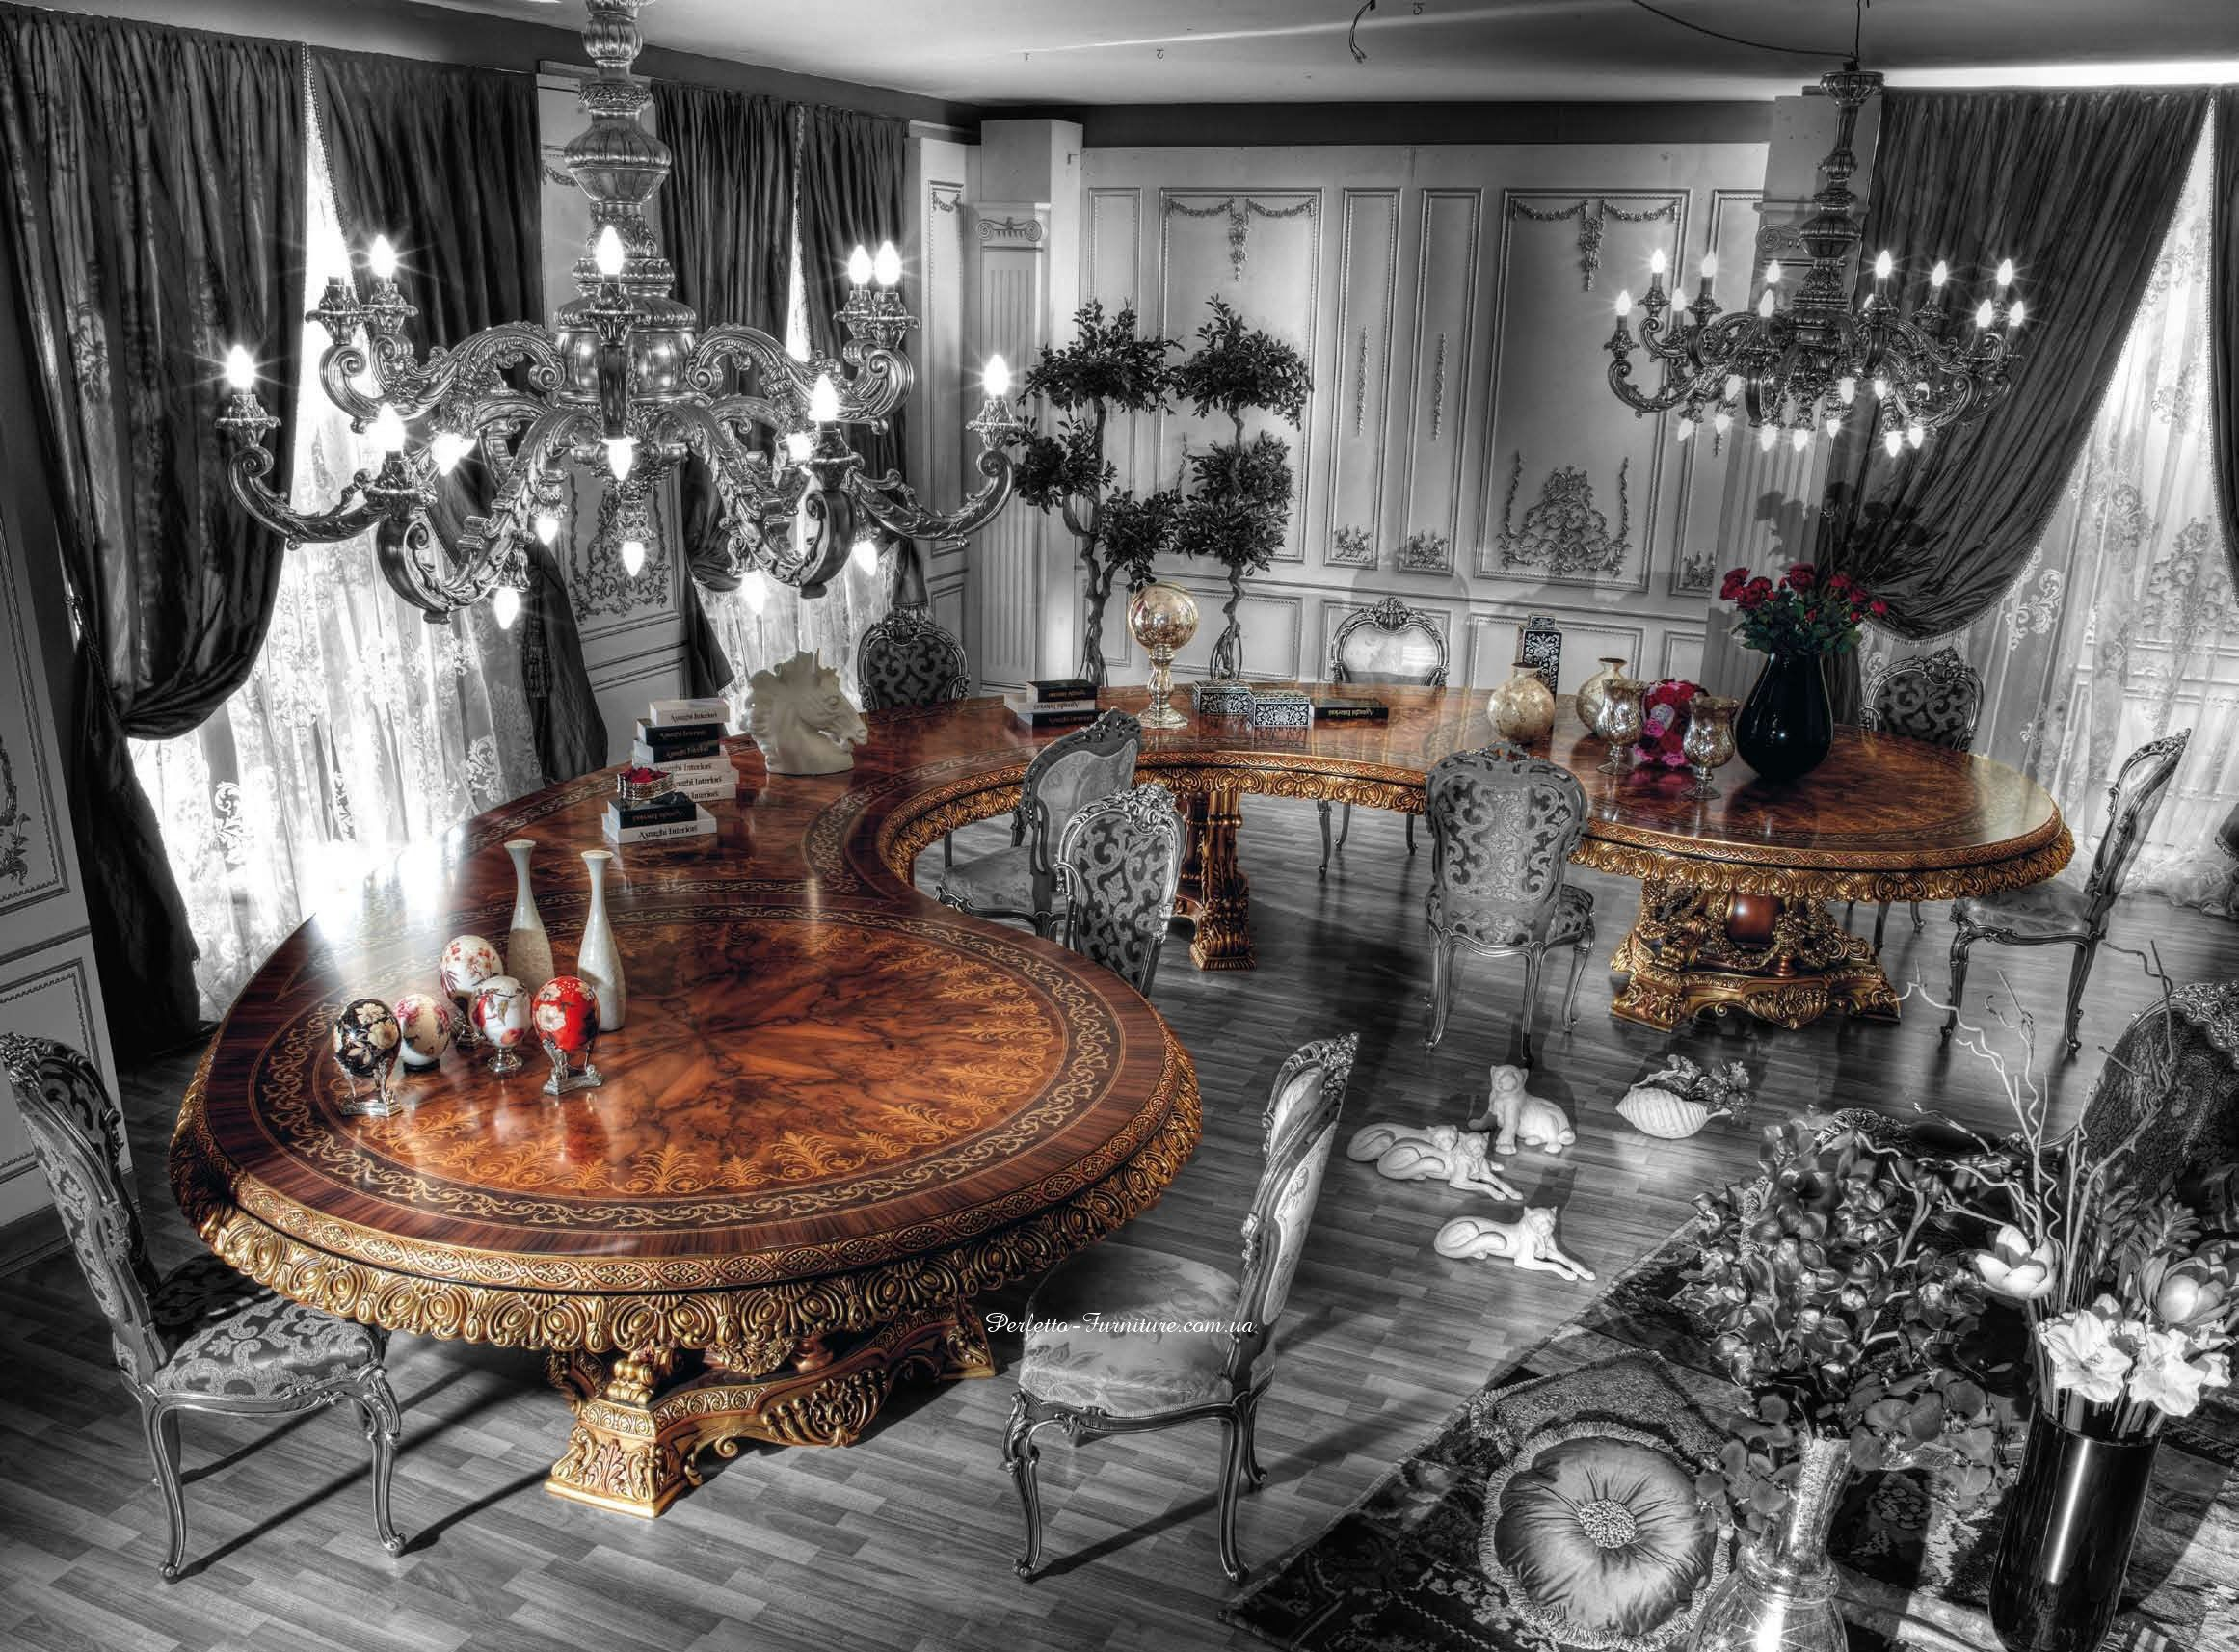 Italian Curved Dining Table In Baroque Styletop And Best Italian Stunning Italian Dining Room Decor Review